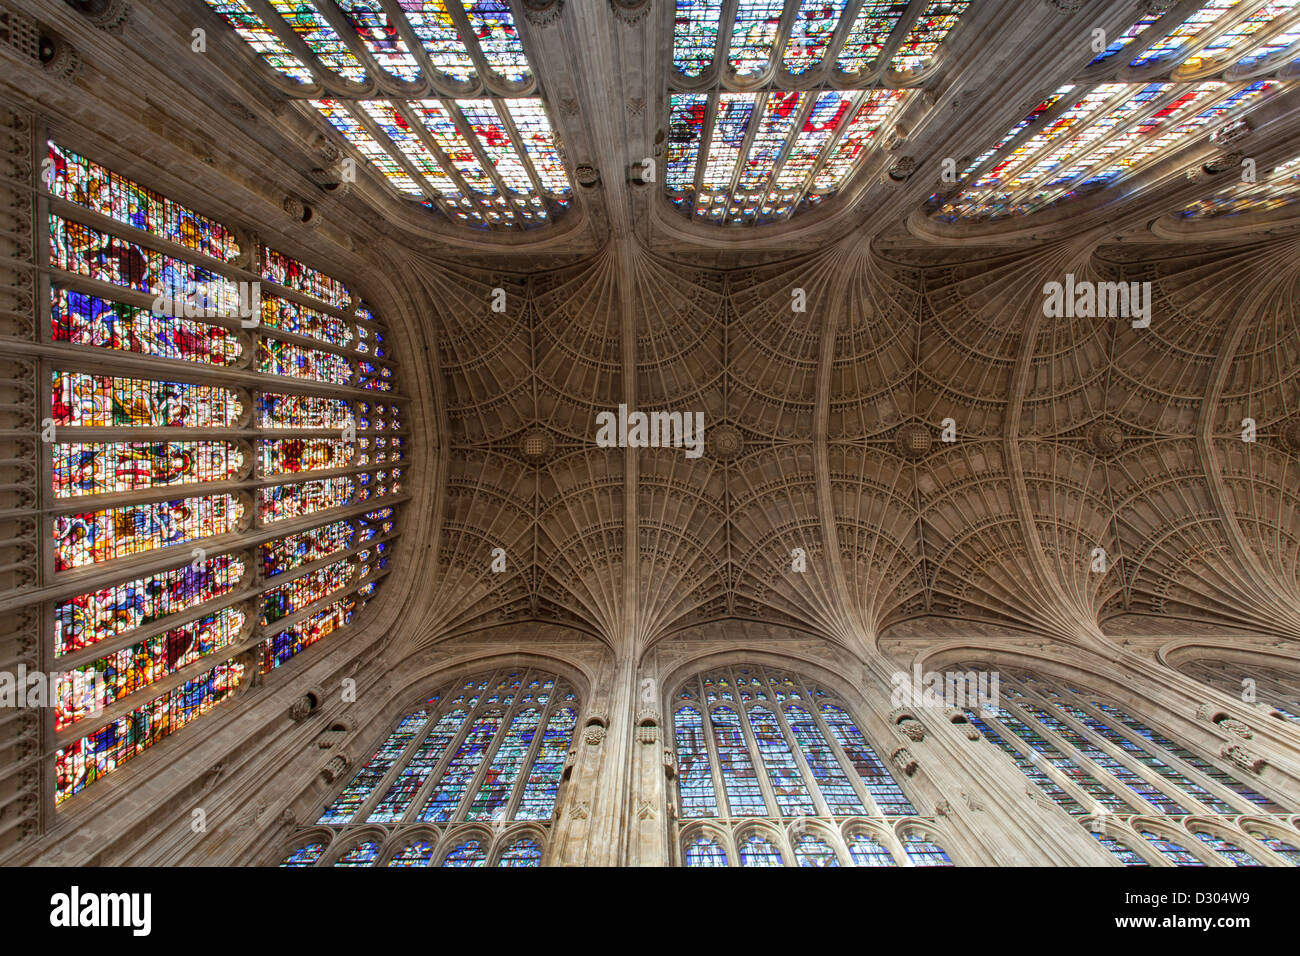 Kings College Chapel glass windows and ornate ceiling Stock Photo